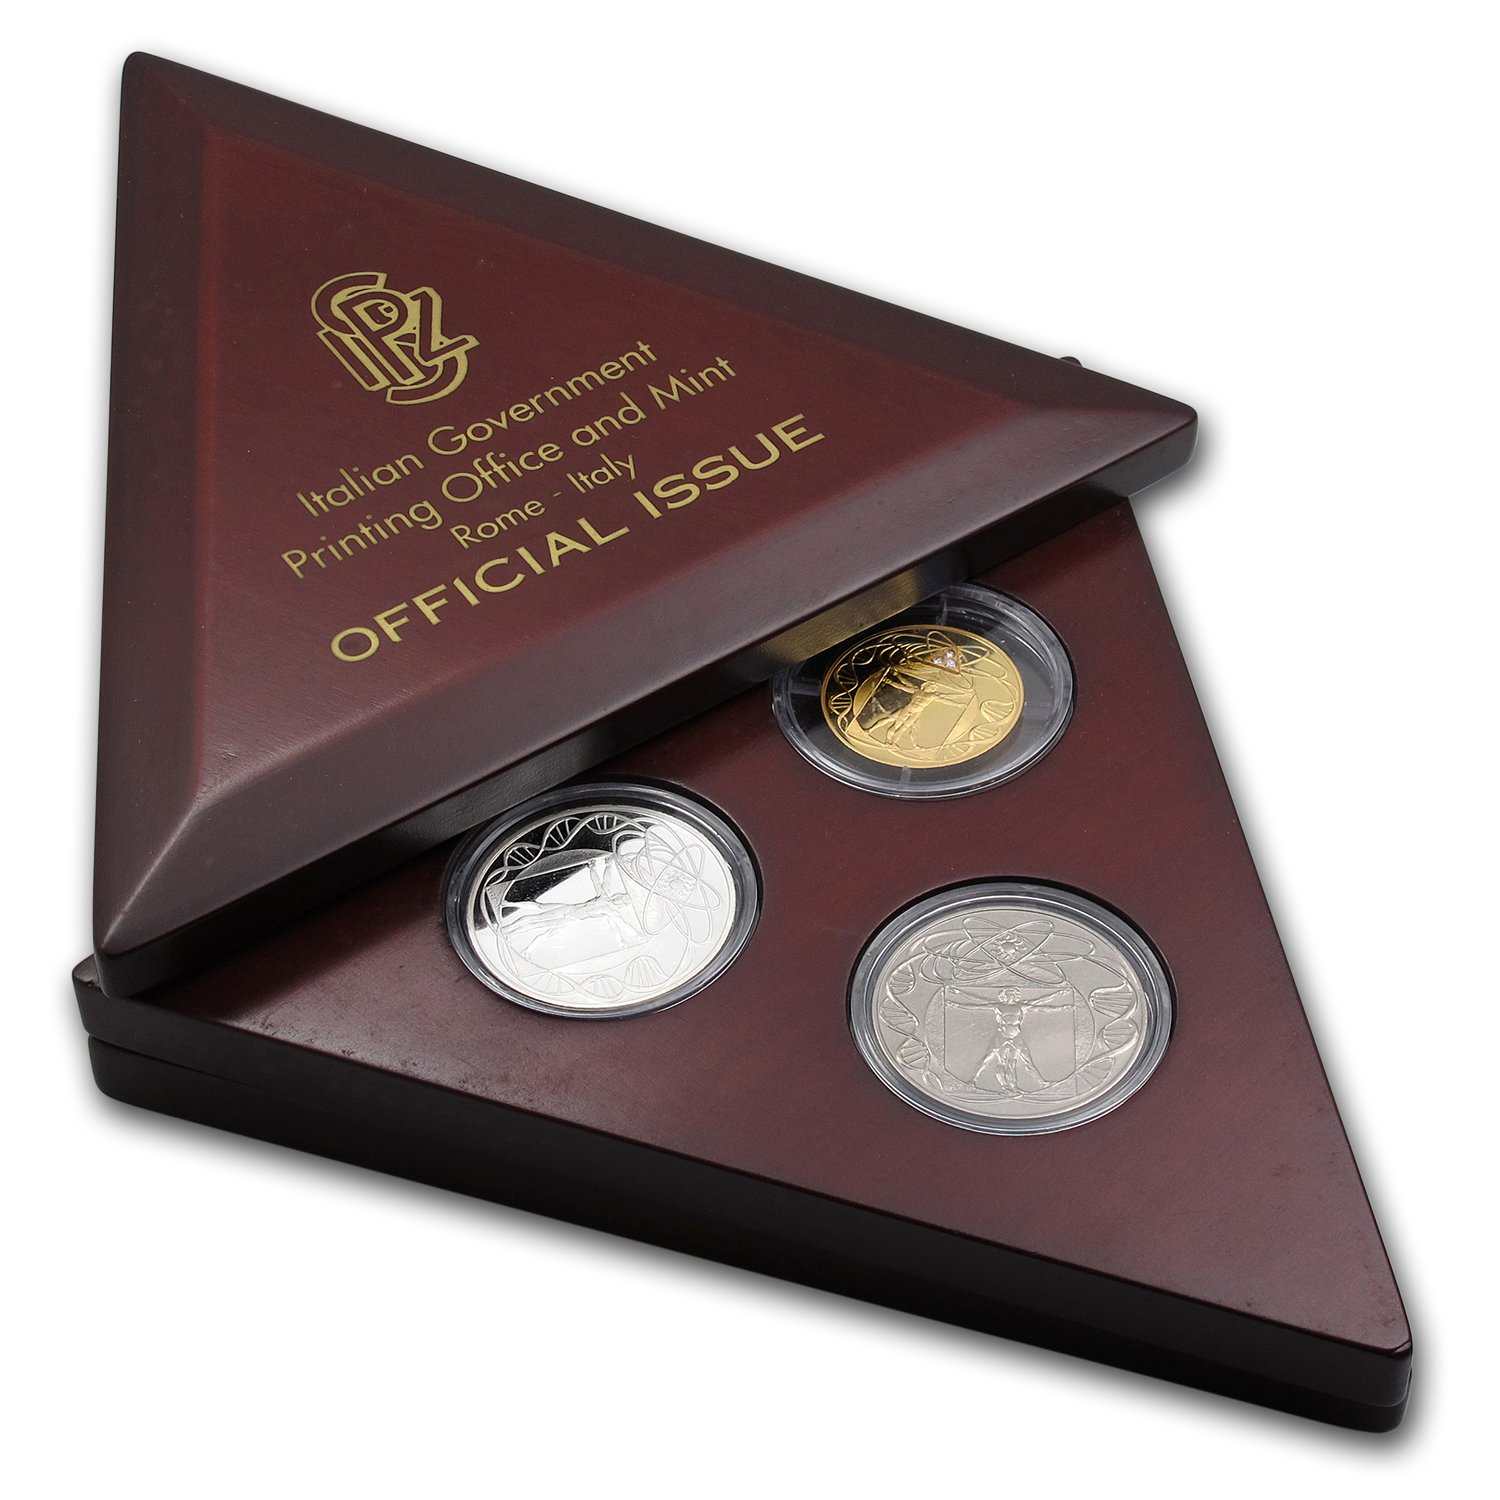 2000 3-Metals Honoring The New Millennium Proof Set (w/Box)